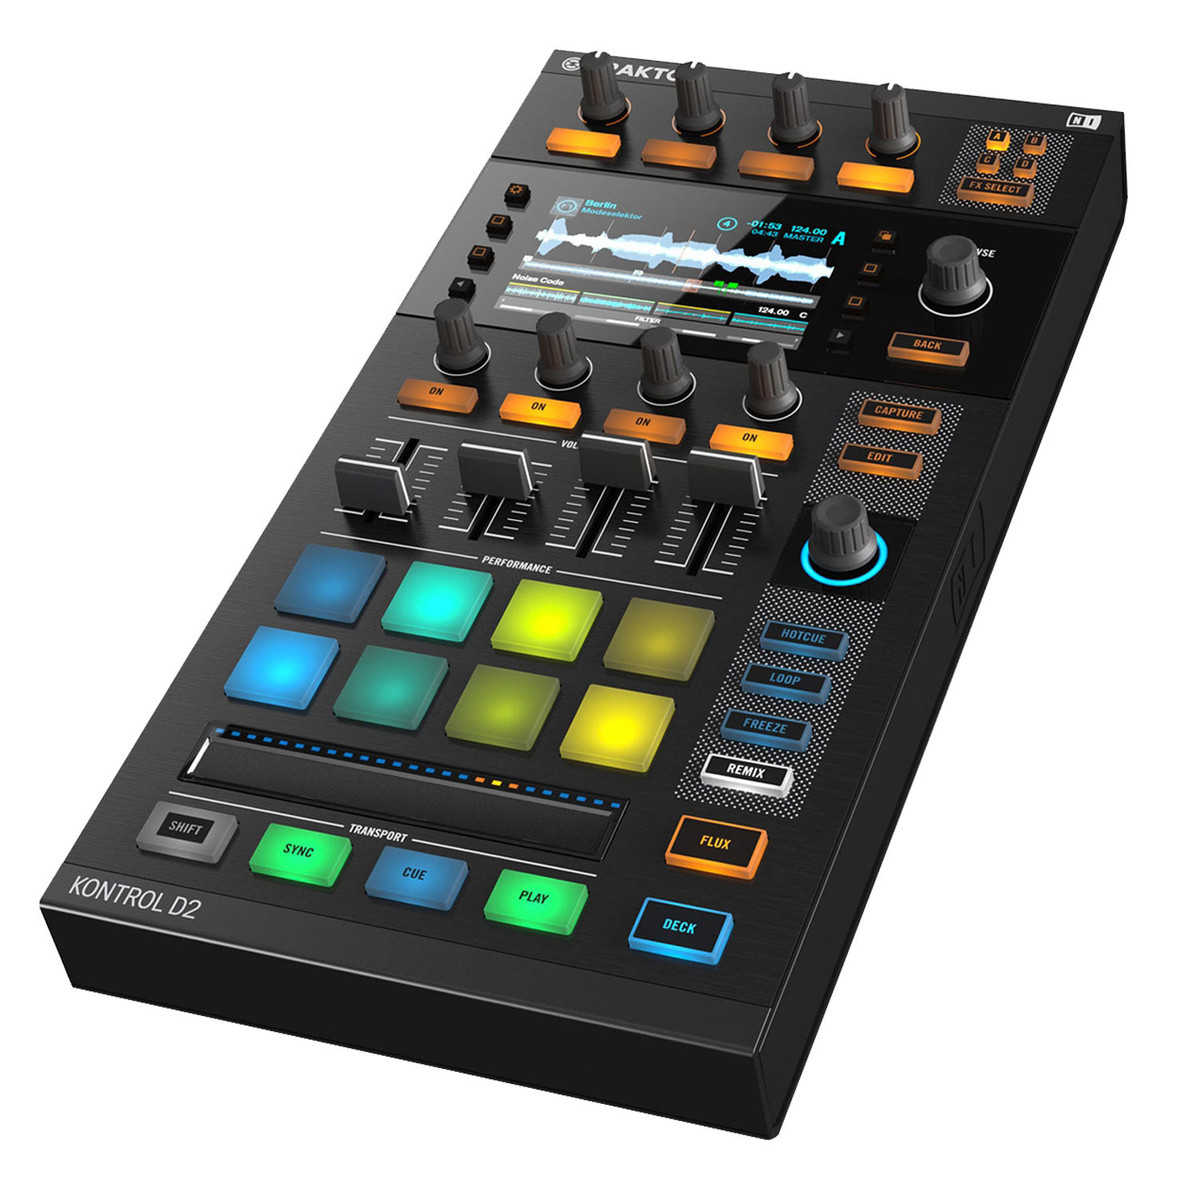 Image of Native Instruments Traktor Kontrol D2 Controller with Visual Display